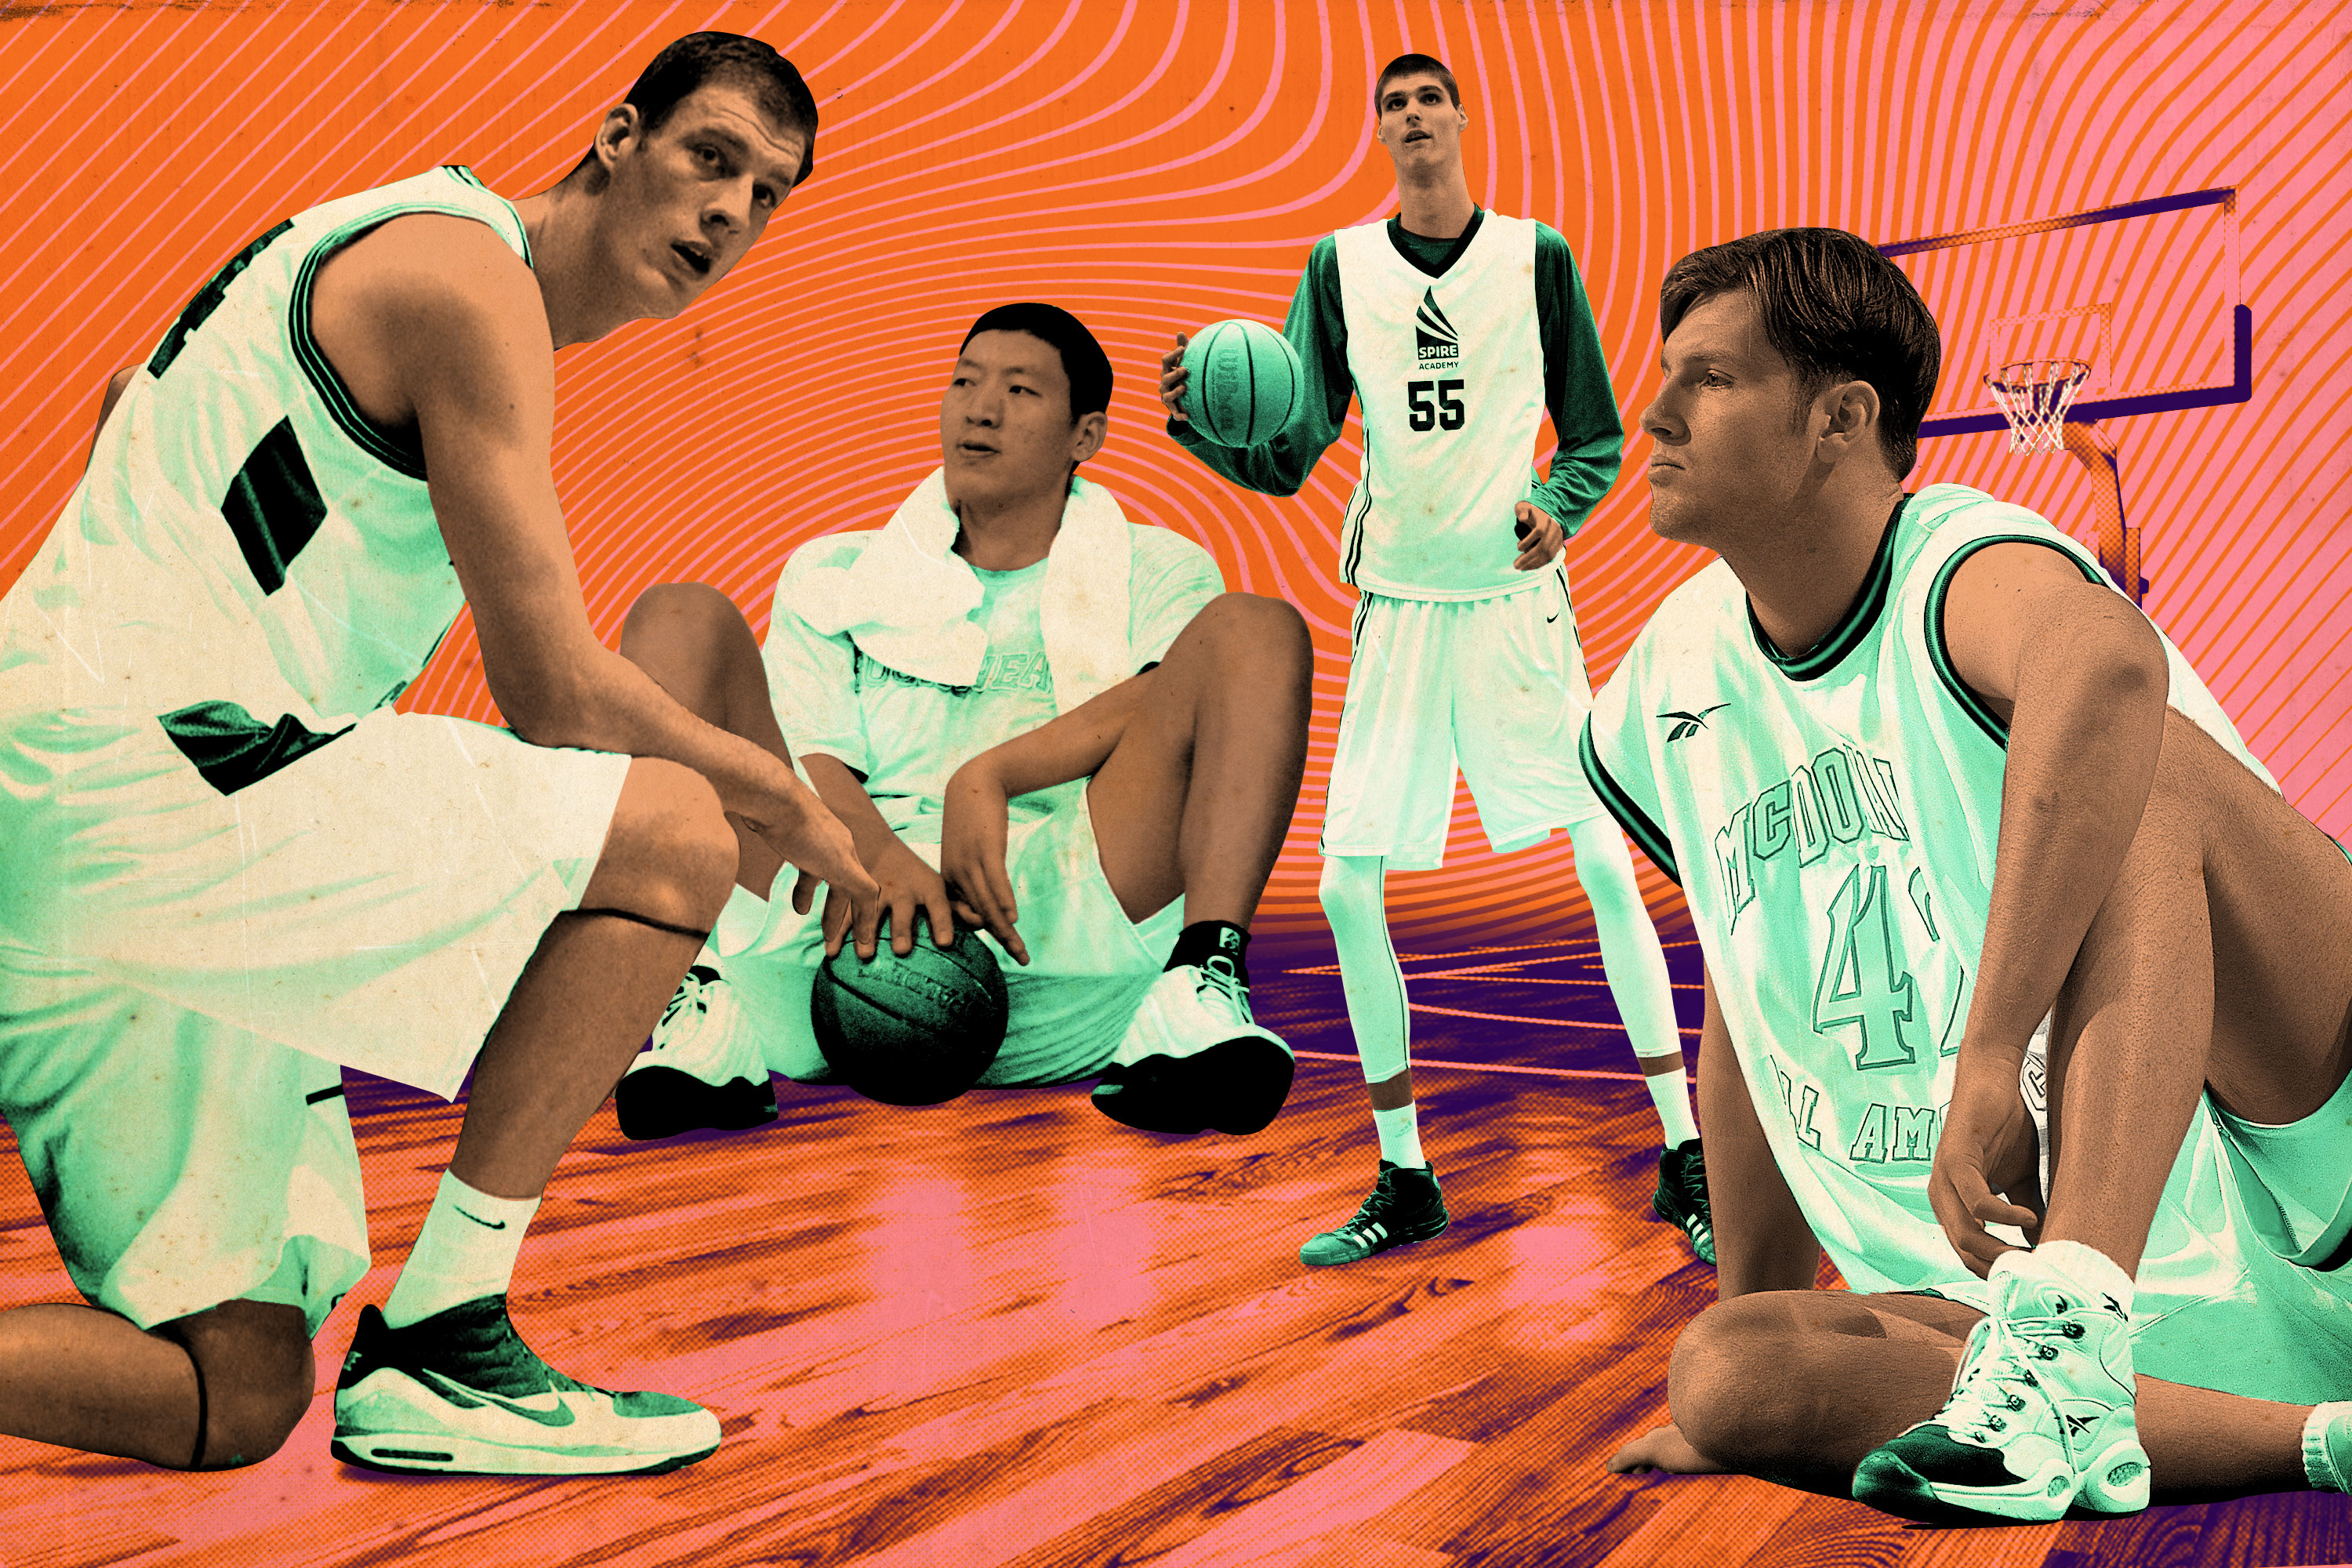 d1a866eab5eee The Tall Tales of Six Men Too Big for Basketball - The Ringer